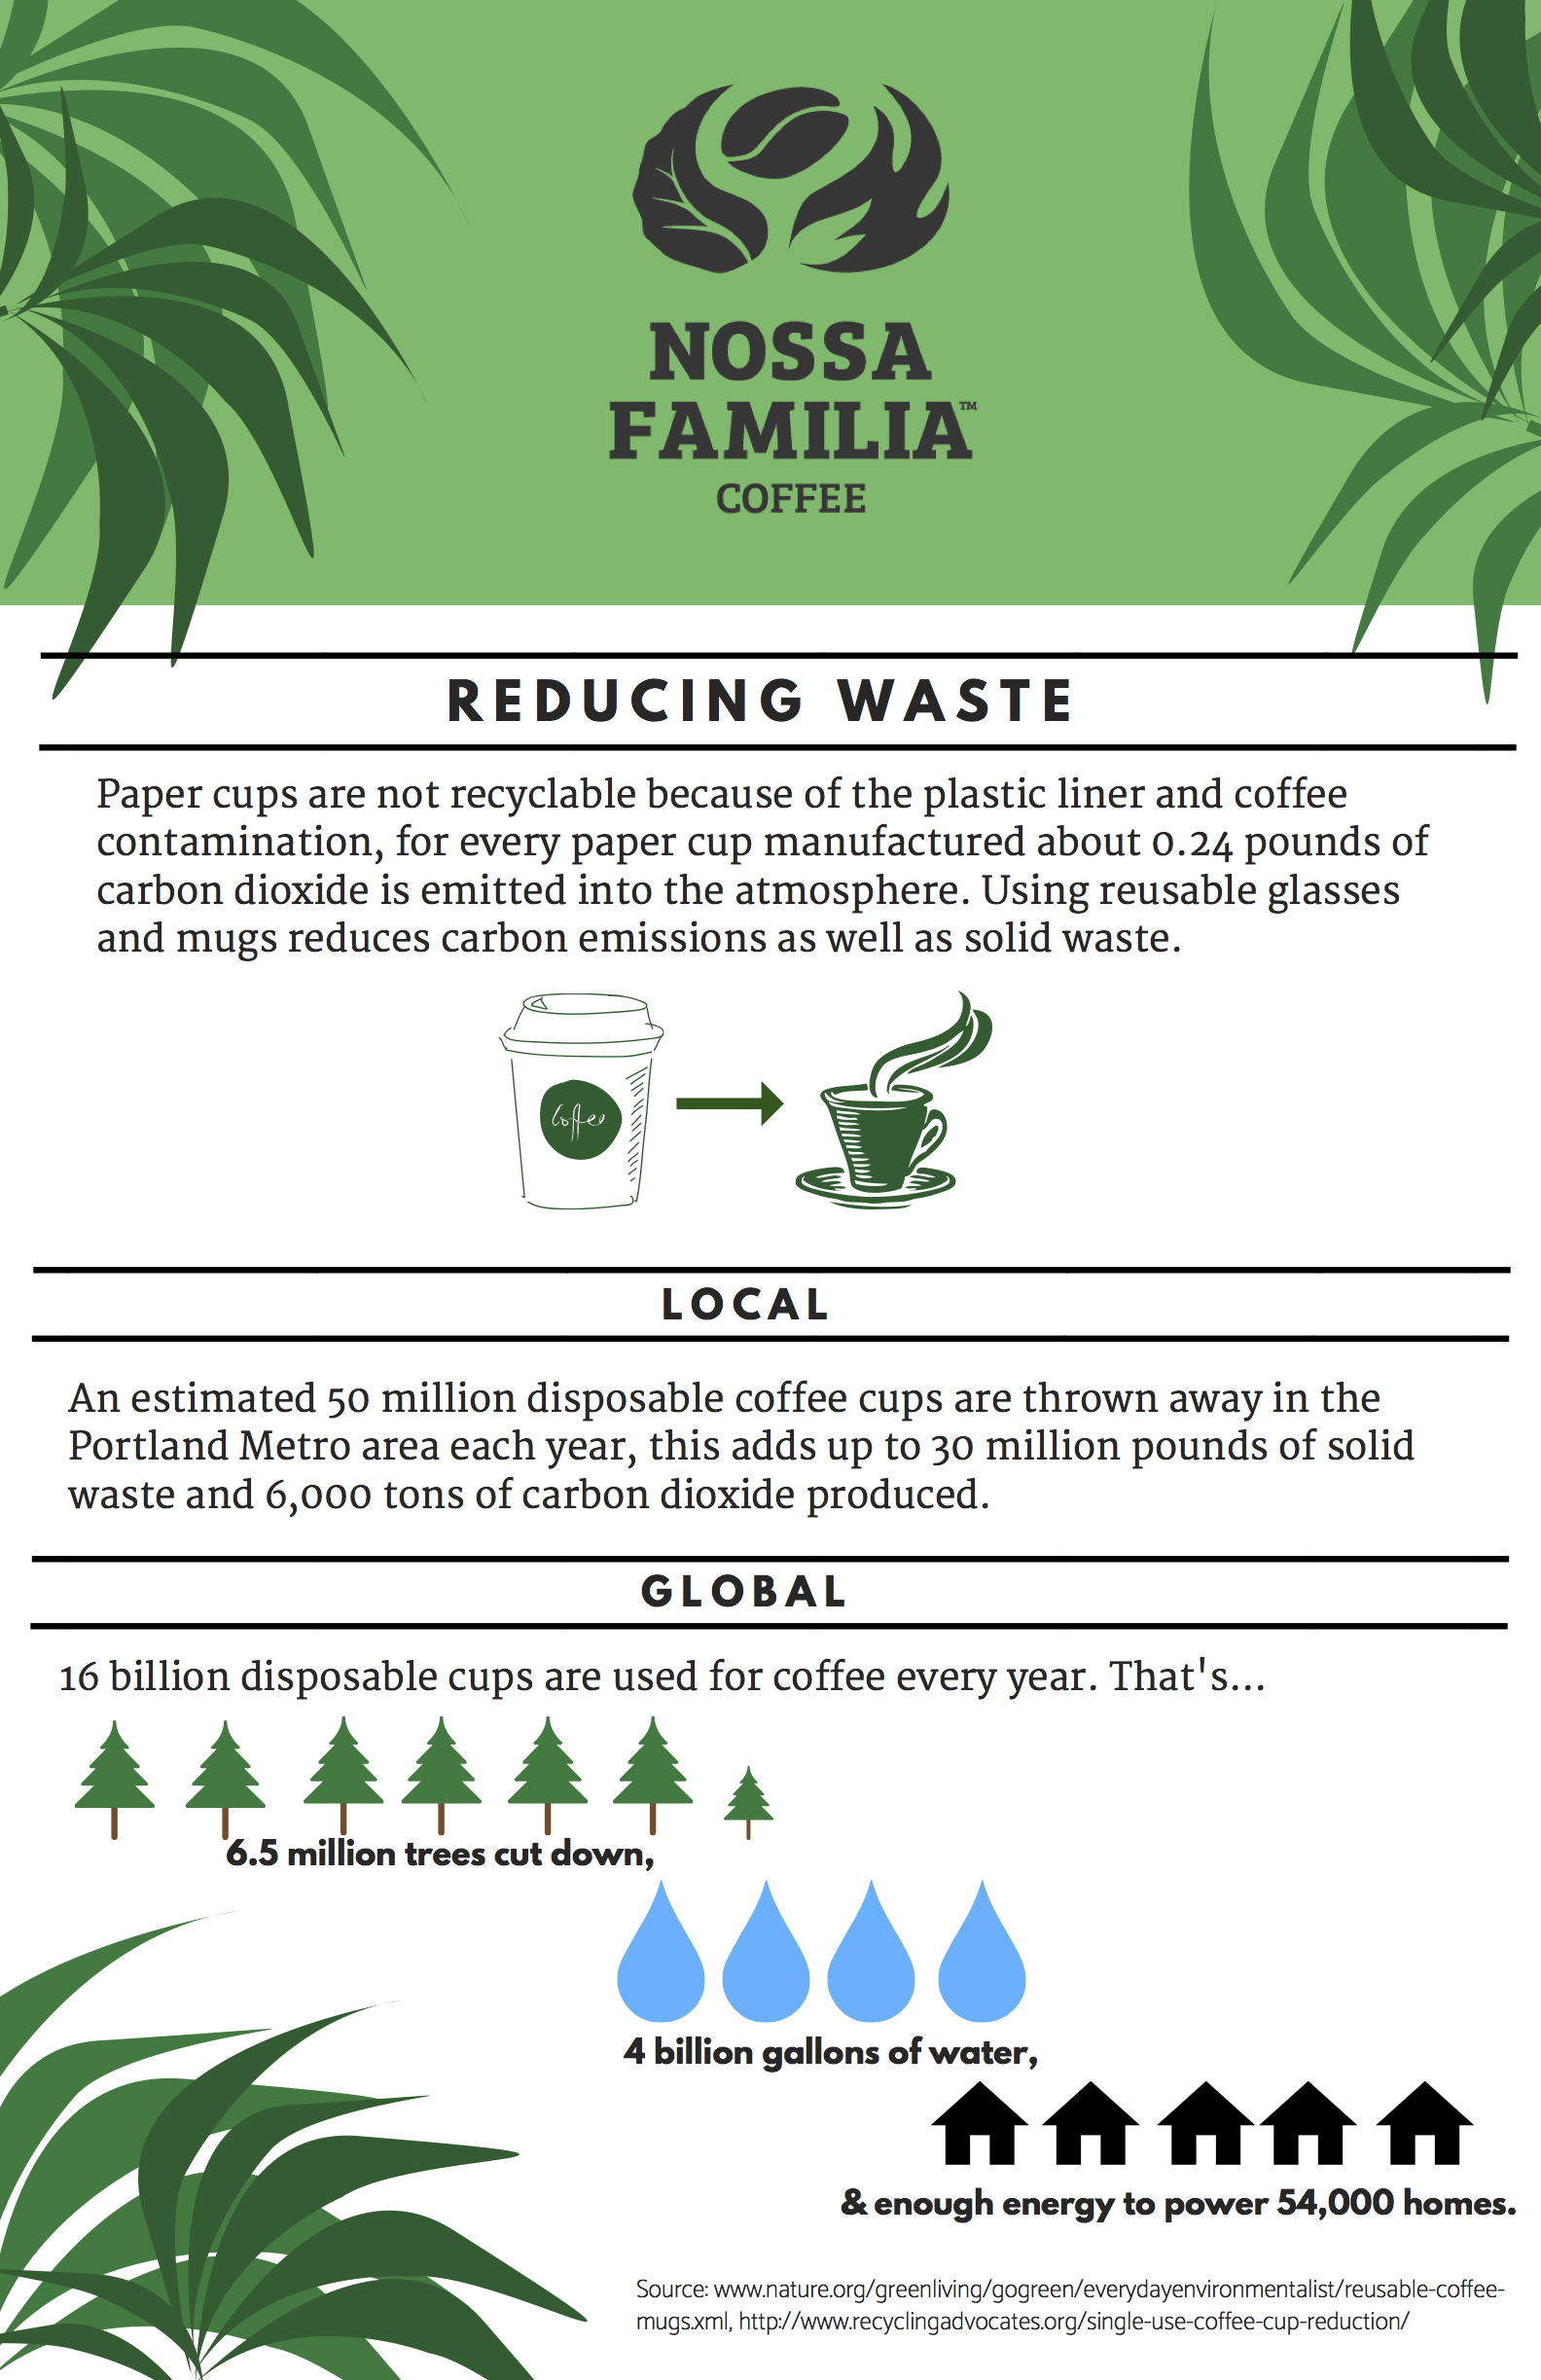 Nossa Familia Coffee Sustainability Poster Series - Poster #3: Reducing Waste in Coffee